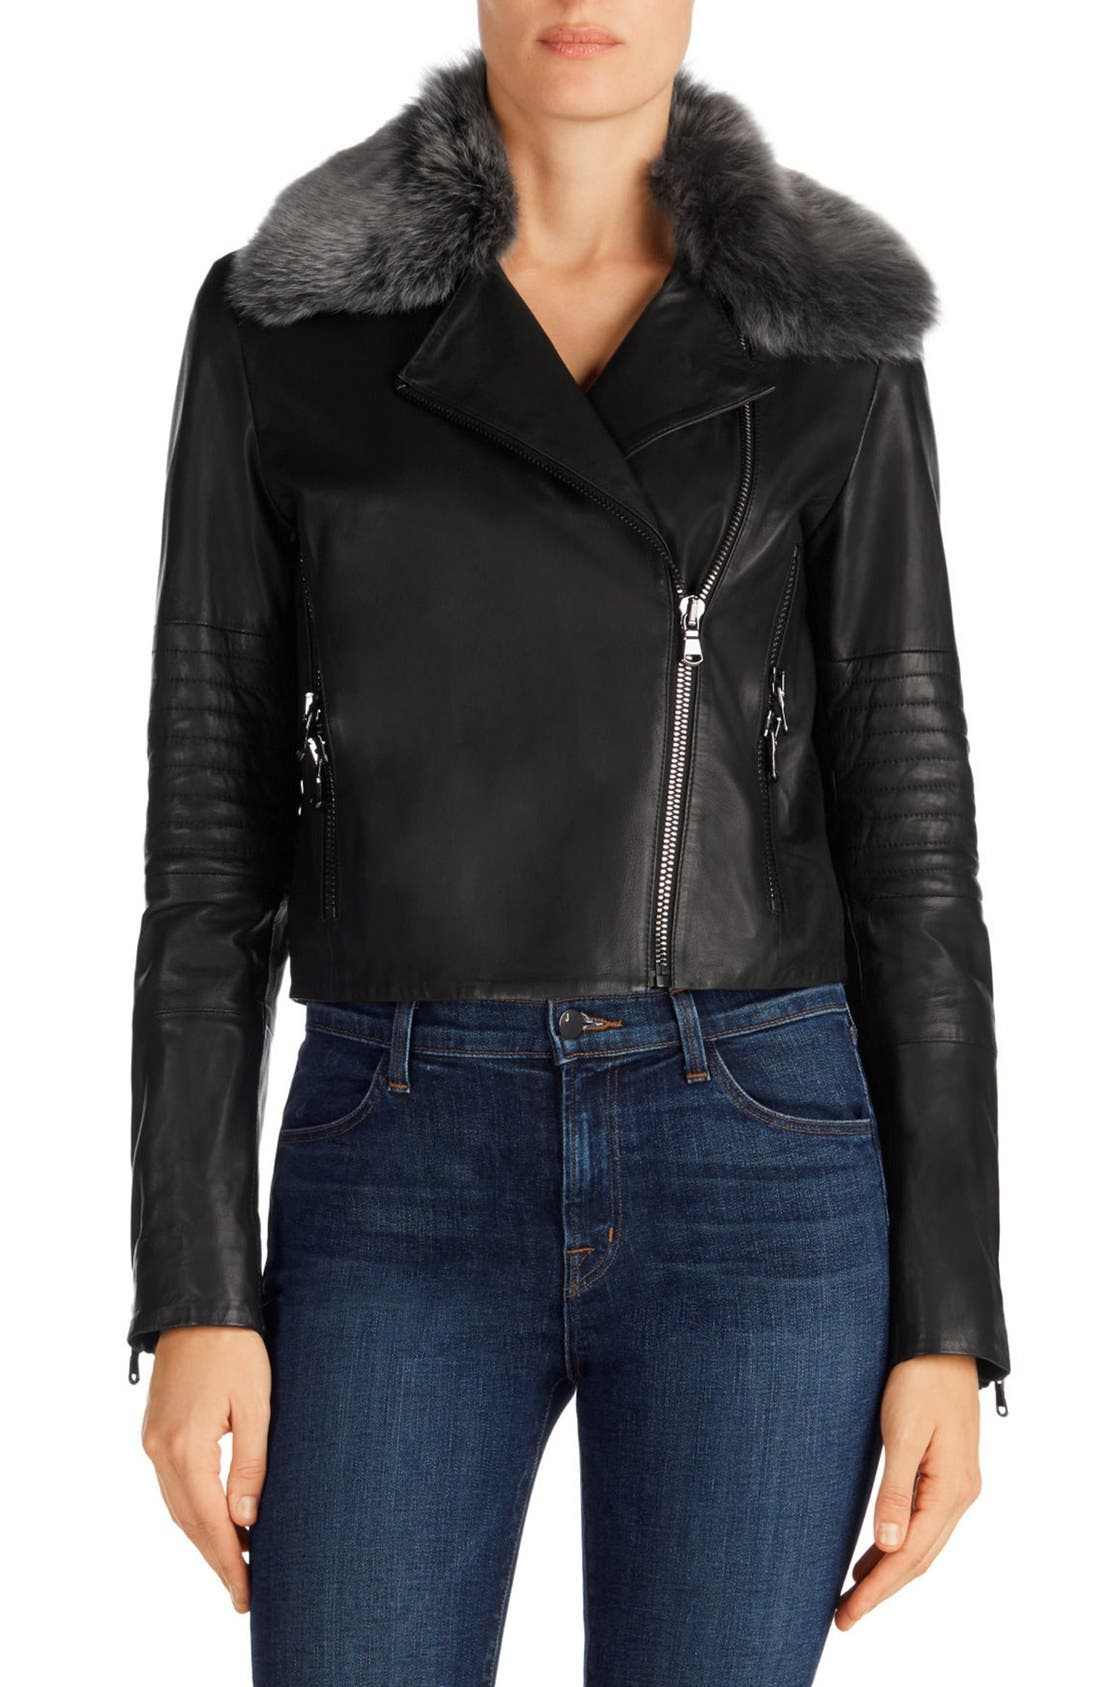 Alternate Image 1 Selected - J Brand Aiah Leather Moto Jacket with Detachable Lamb Shearling Collar